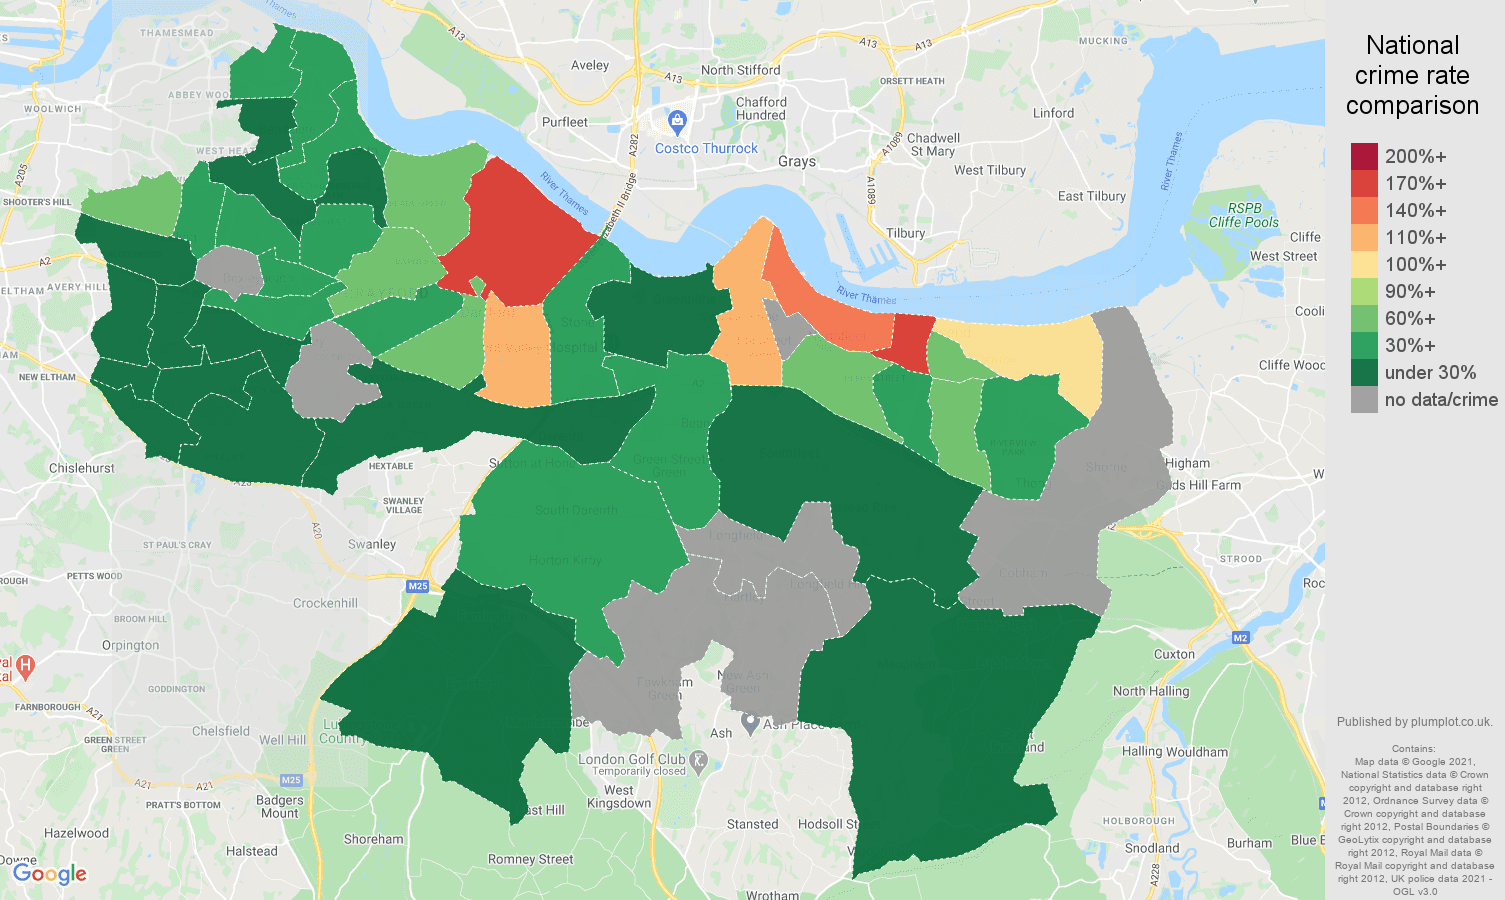 Dartford bicycle theft crime rate comparison map